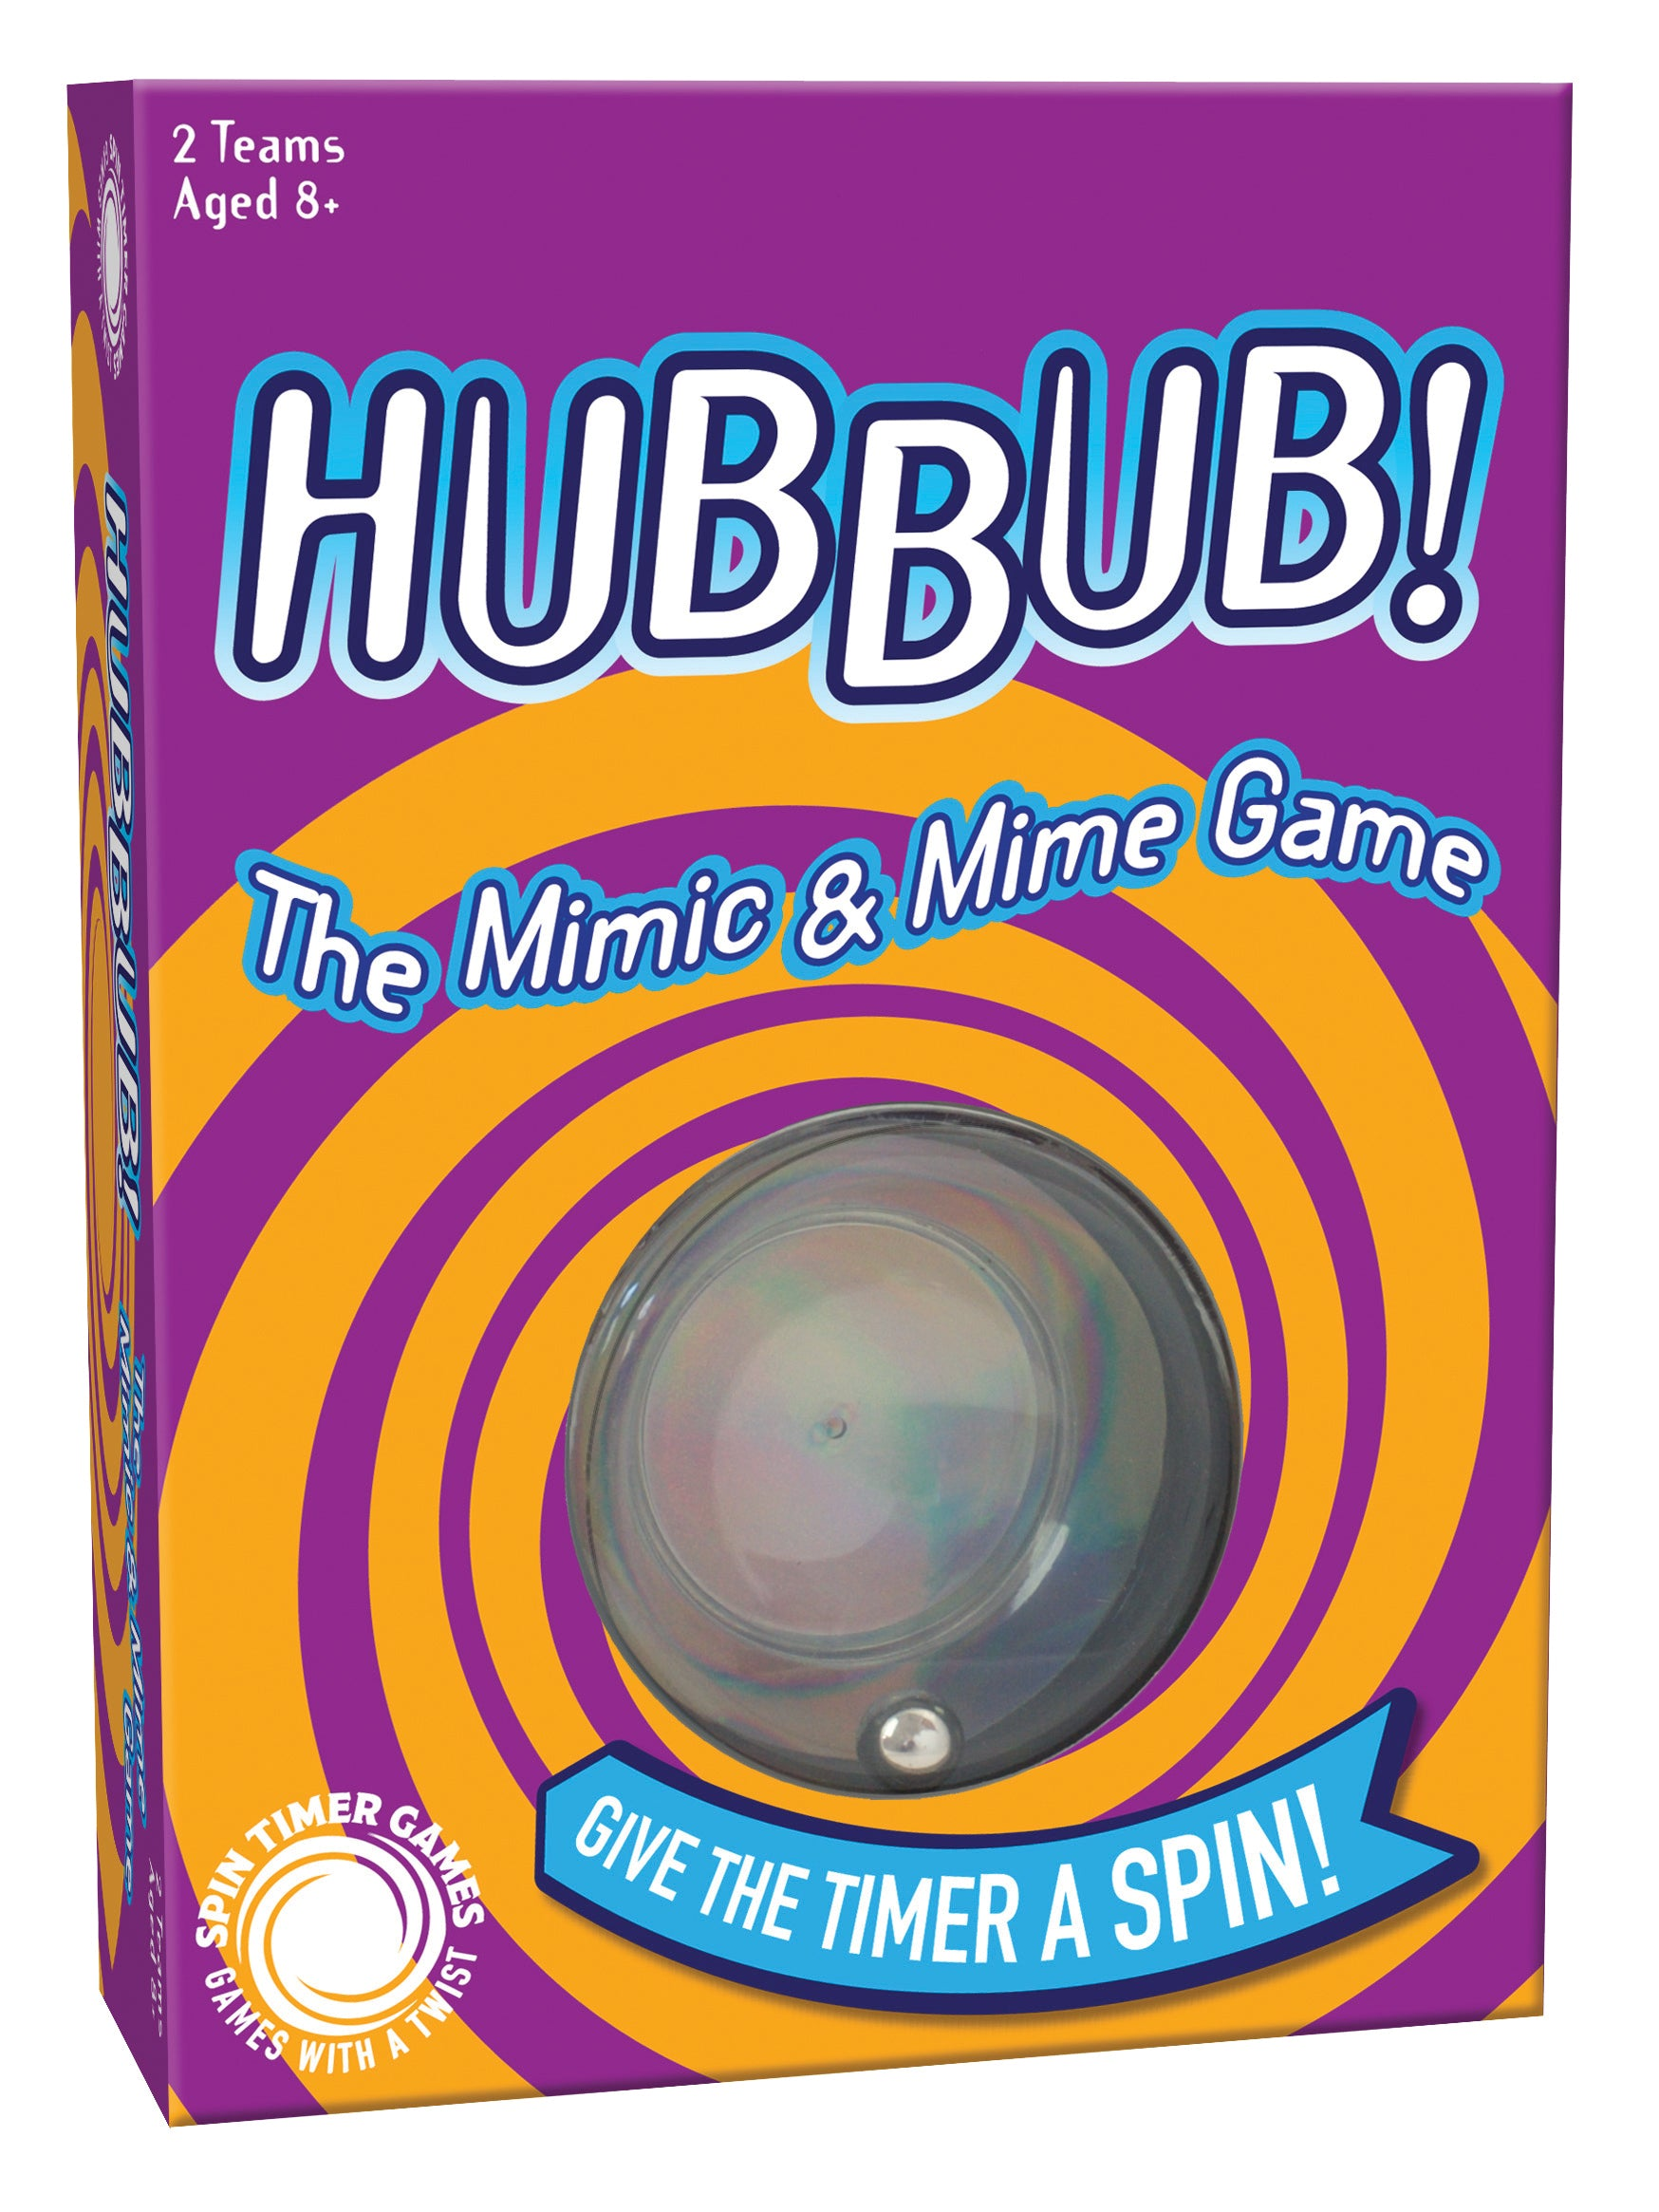 Cheatwell Games Hubbub - The Mimic & Mime Game